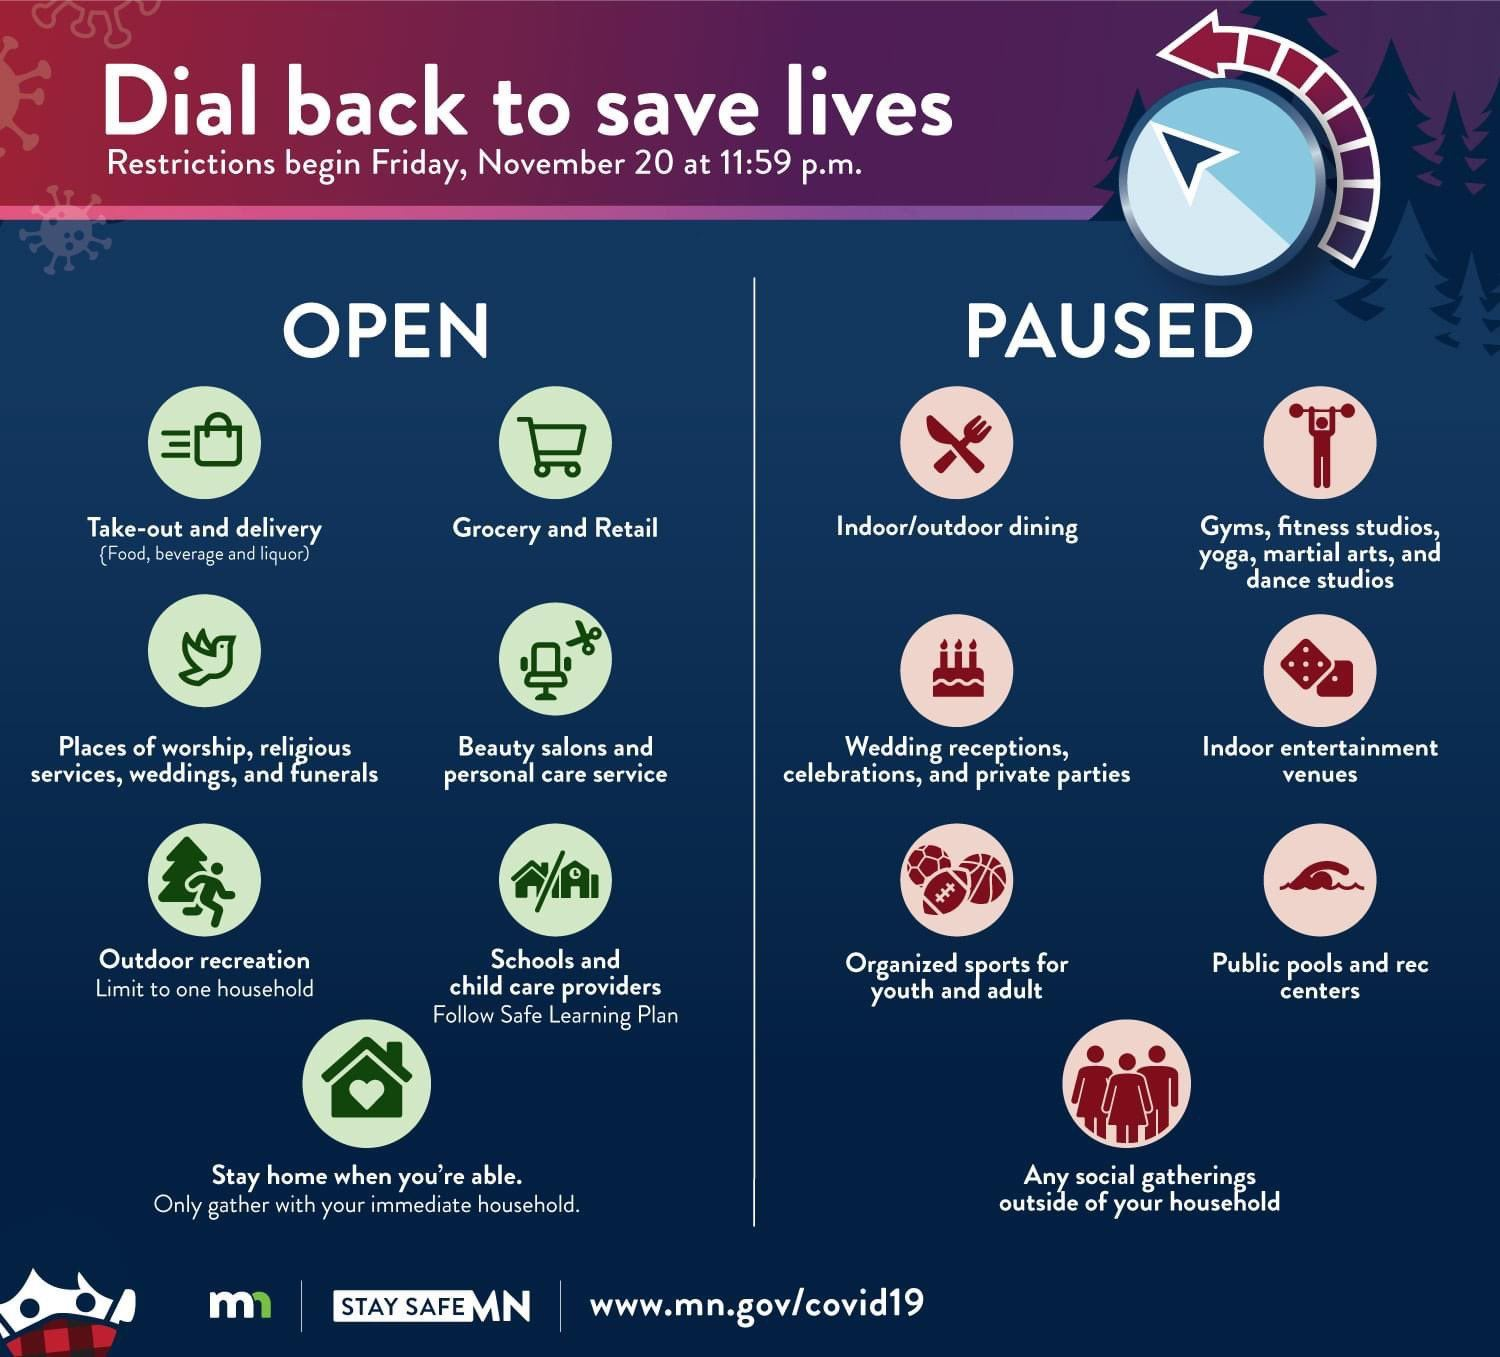 Dial Back graphic November 20, 2020